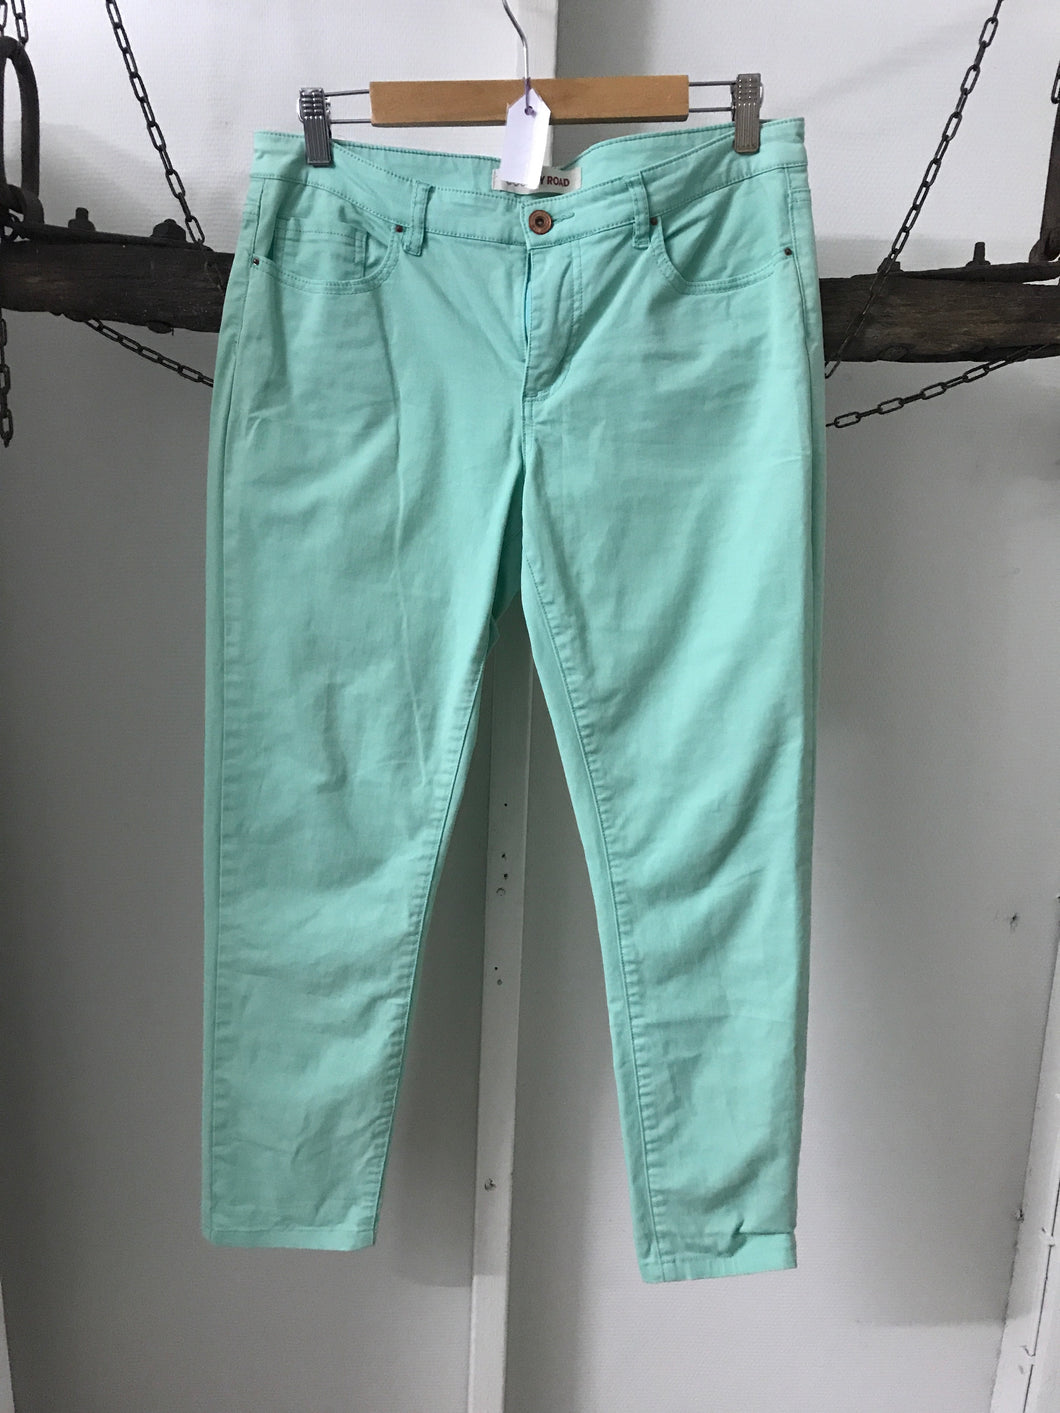 Country Road Green Straight Jeans Size 12